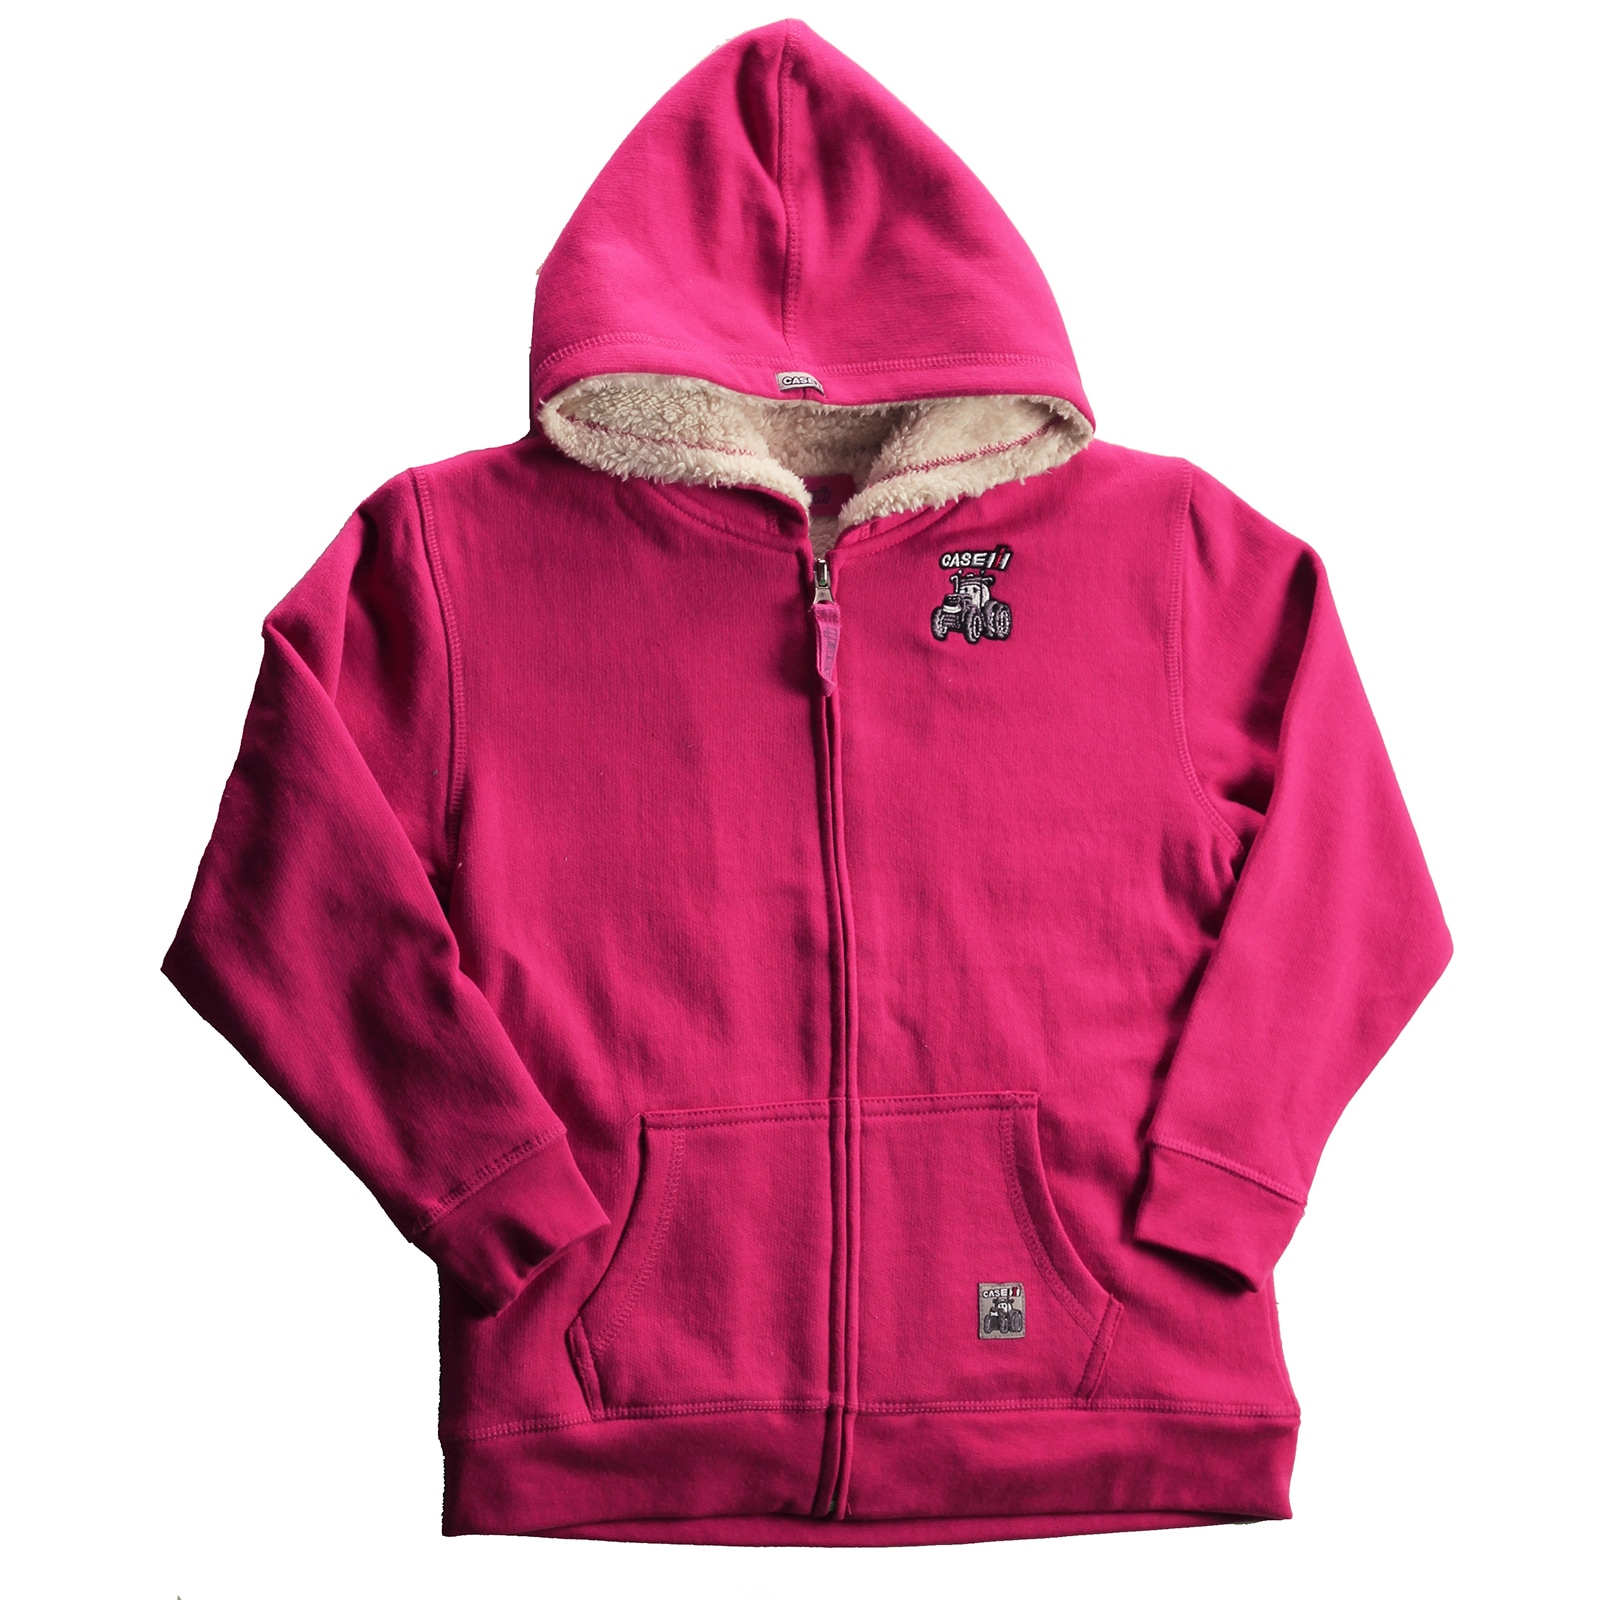 e2d6349d0 Case IH Girls' Pink Sherpa Lined Hoodie